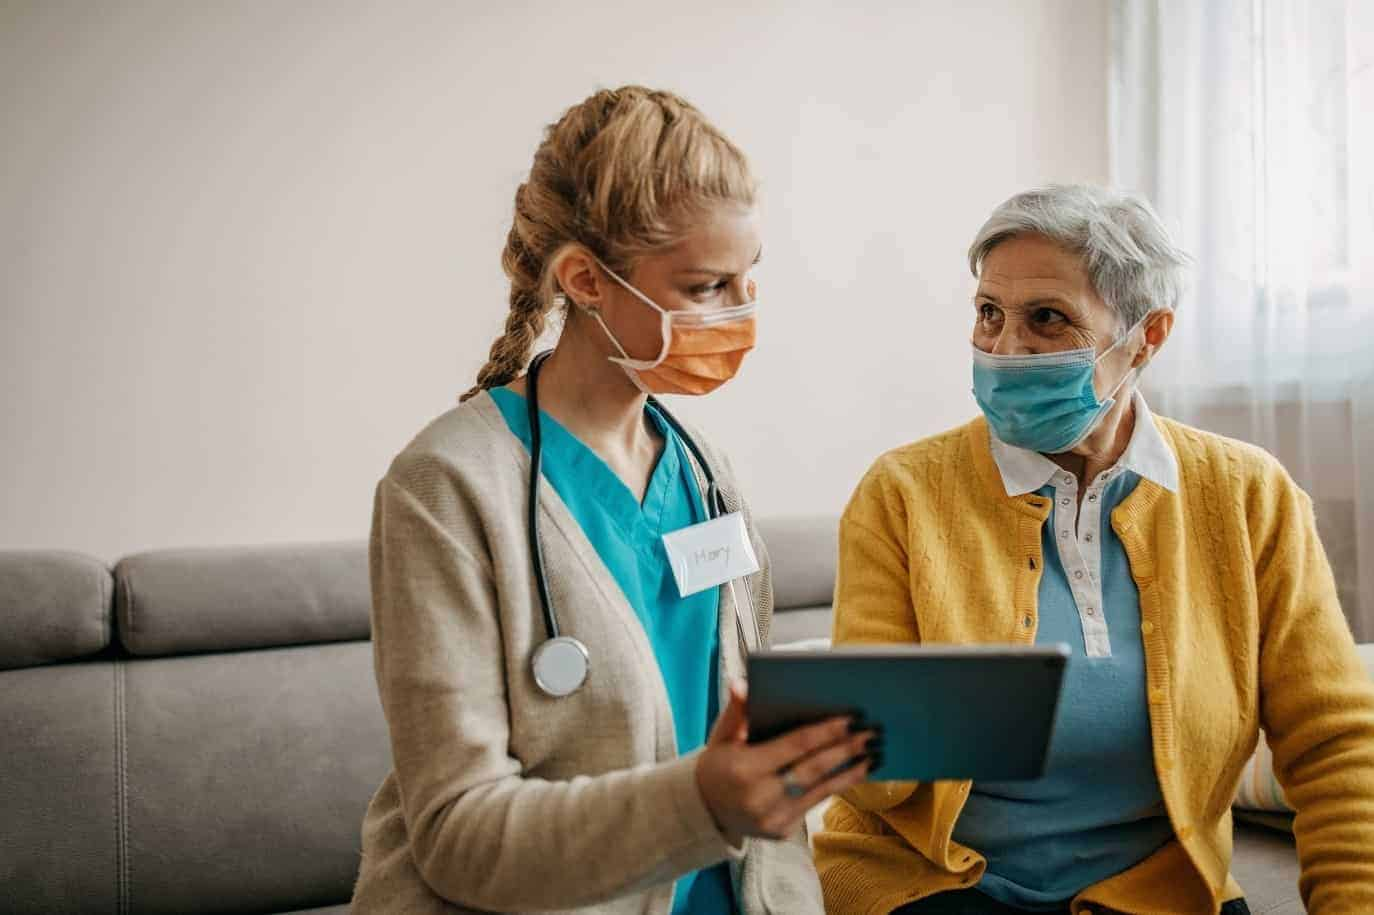 Healthcare professional reviews fitness plan with senior patient during COVID-19 pandemic, Healthy Aging Month concept